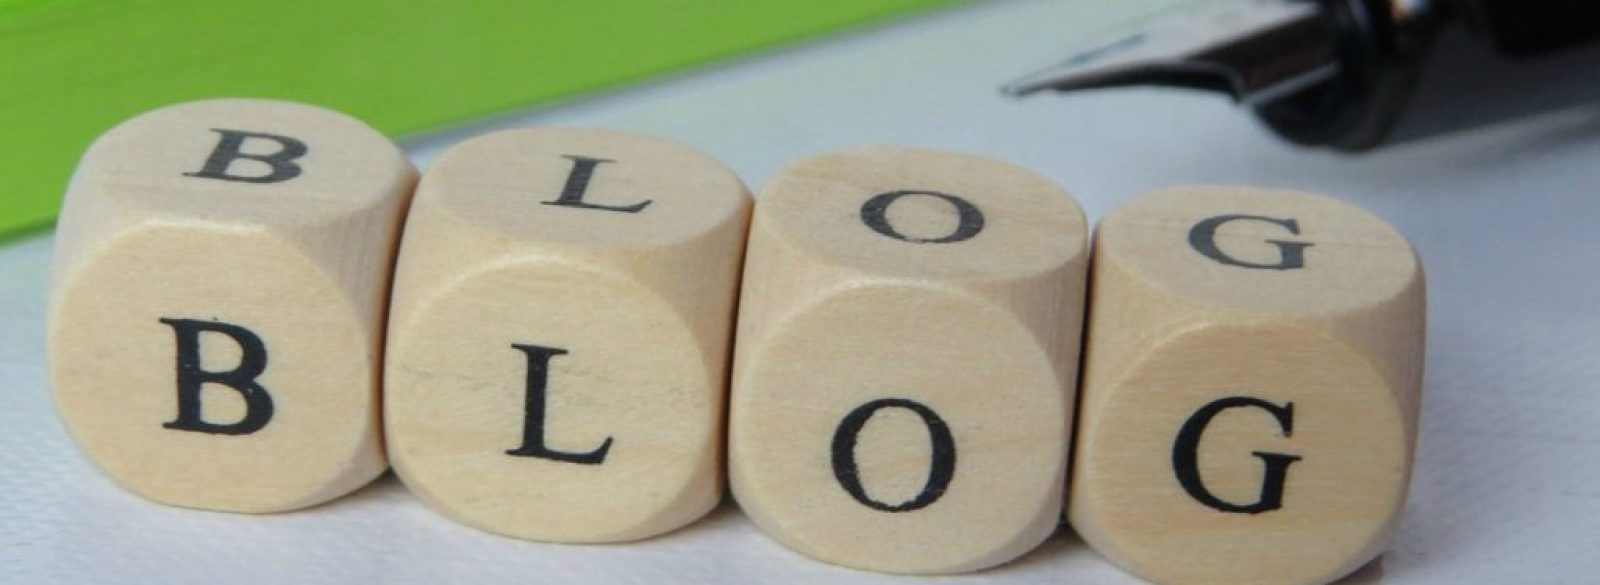 How Long Should Your Blog Article Be